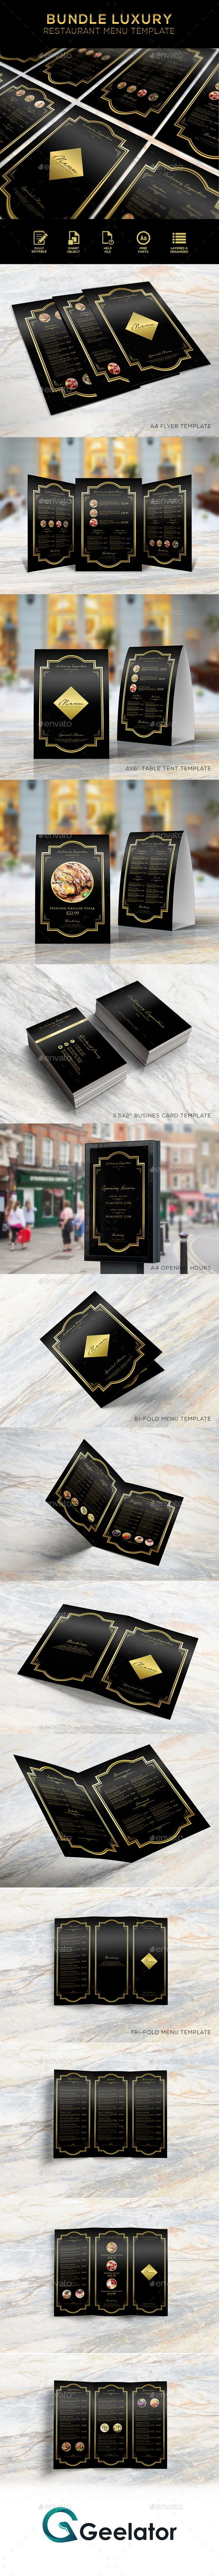 Bundle Luxury Restaurant Menu Template - #bundle #fastfood #streetfood #food #restaurant #delicious #seafood #gourmet  #luxury #menu #foodmenu #brochure #brochuremenu #eat #dinner #breakfast #lunch #menudesign #cafe #pub #bar #restaurantdesign #restaurantmenu #salad #appetizer #baverages #desserts #flyermenu #luxurydesign #cafemenu